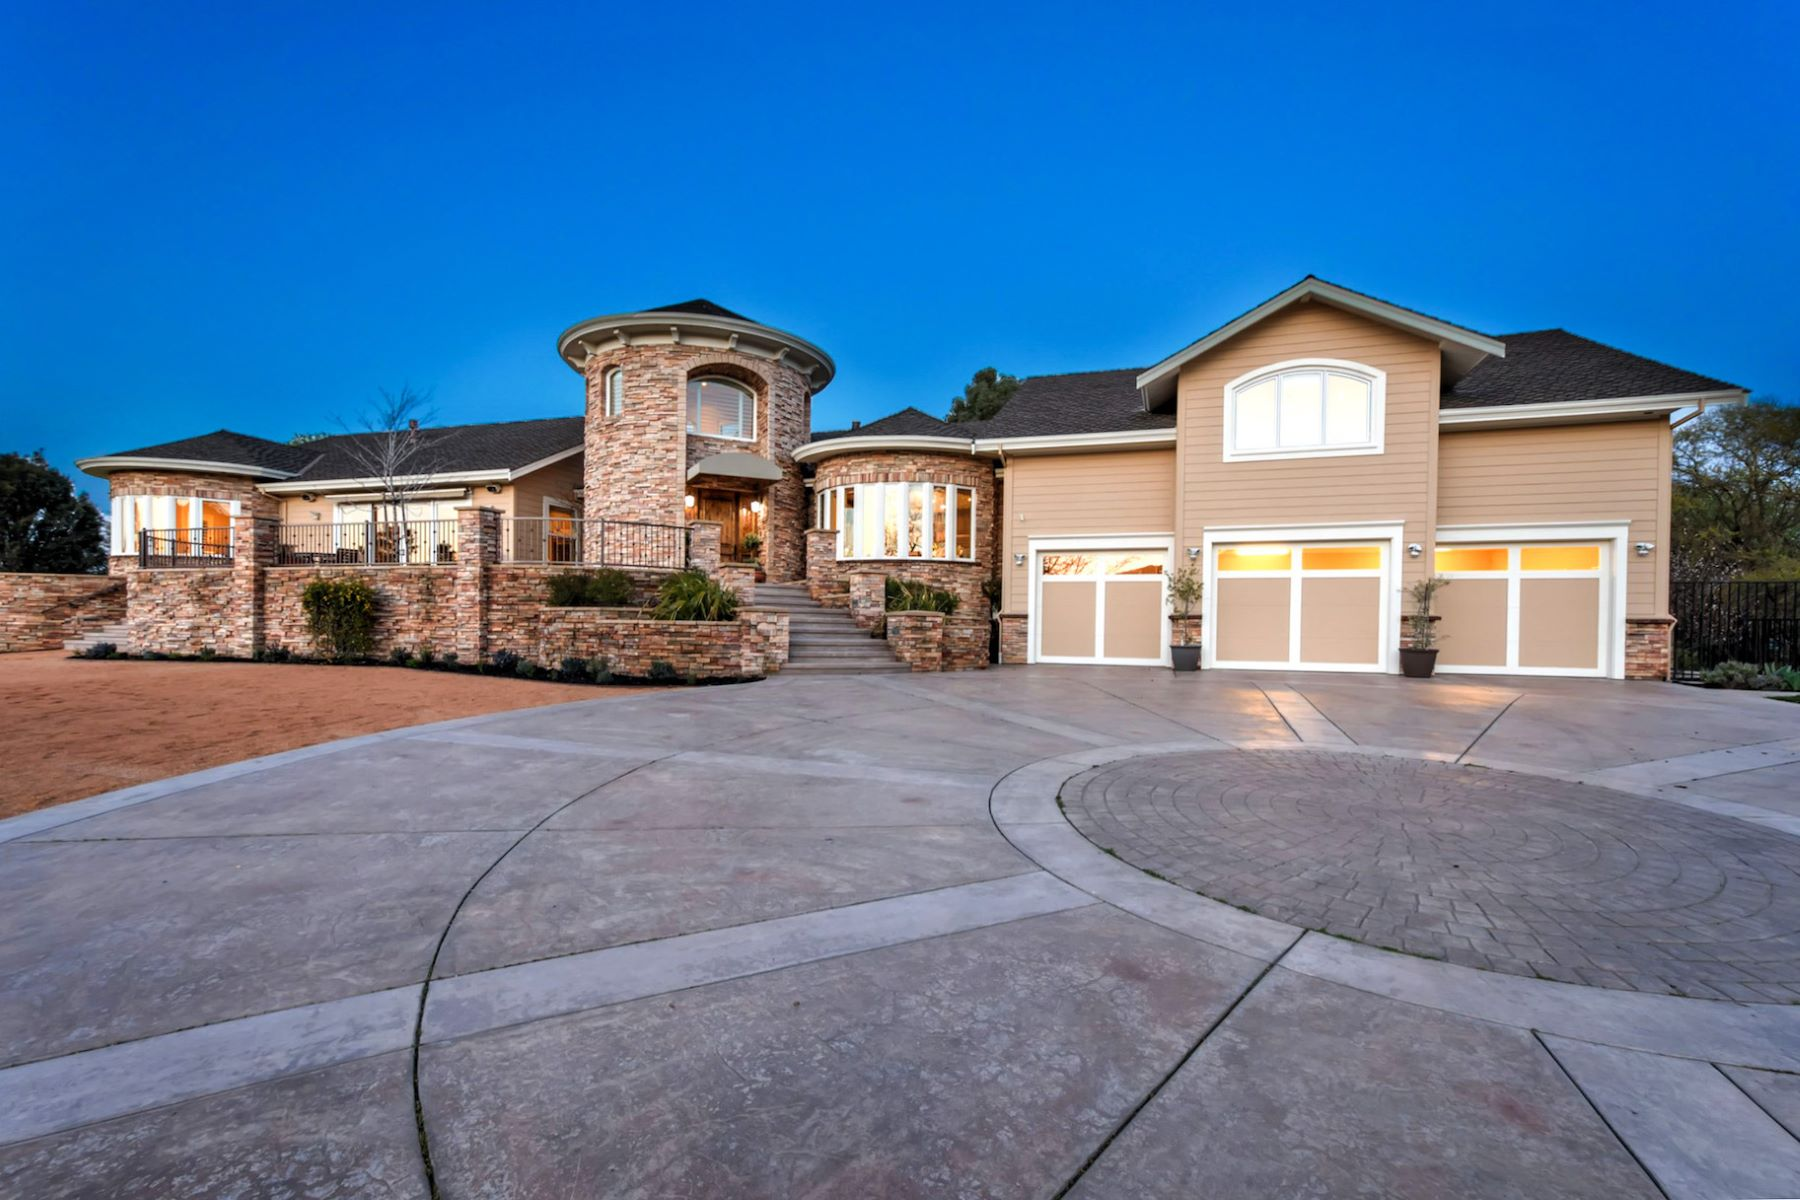 Single Family Home for Sale at 920 Happy Valley Rd, Pleasanton 920 Happy Valley Rd Pleasanton, California 94566 United States